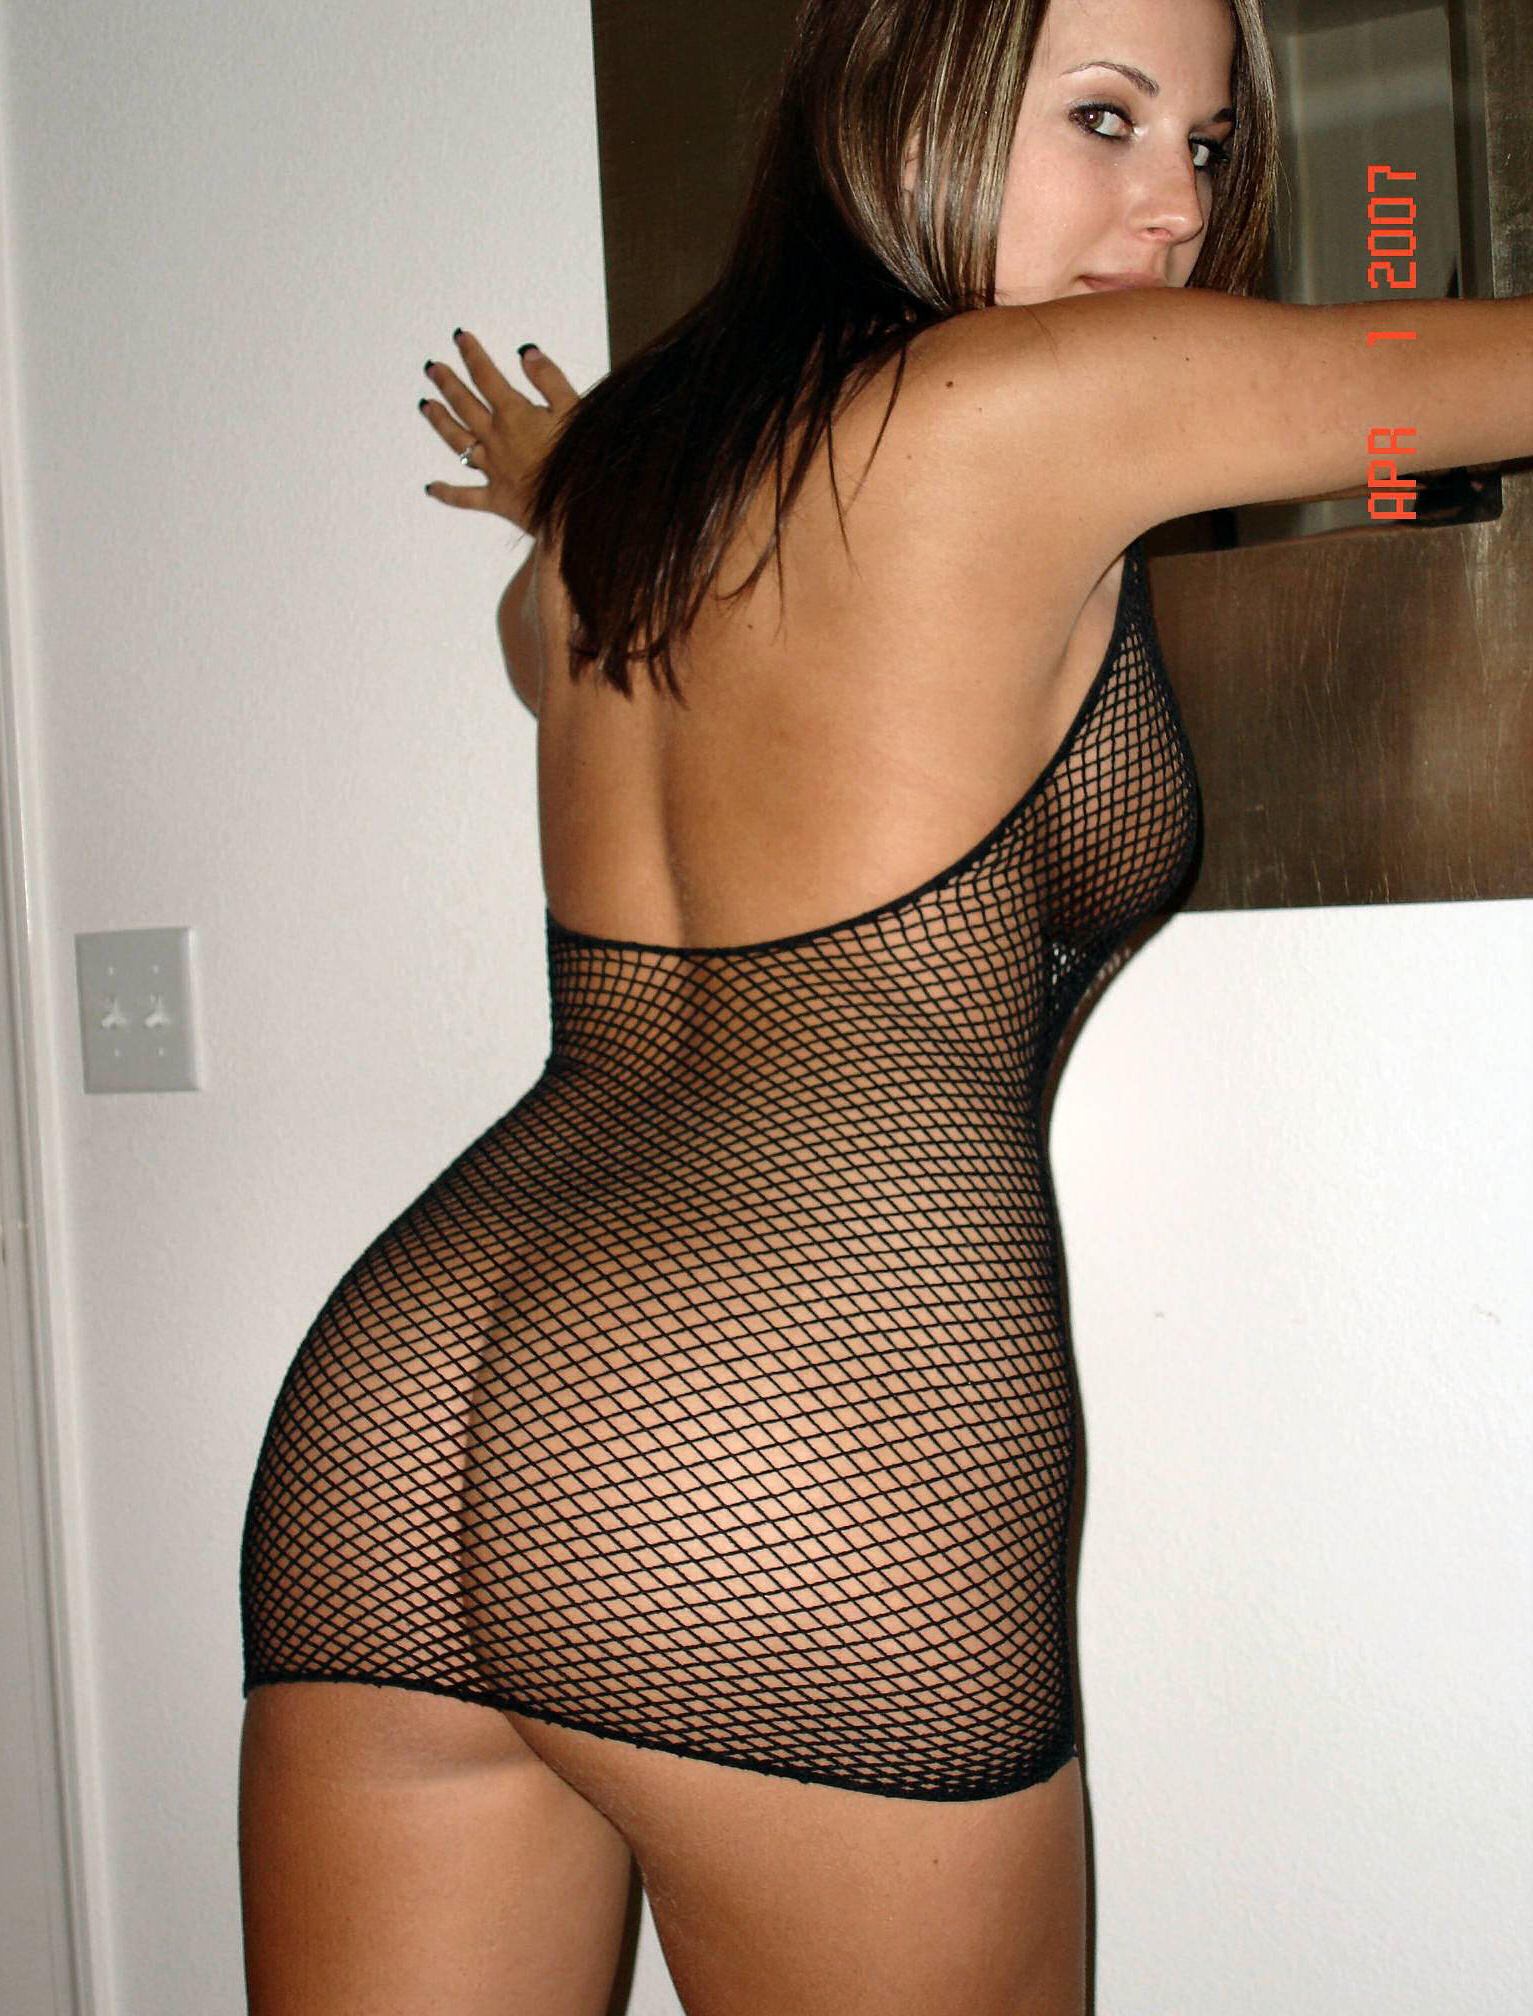 Hot saxy girl transparent cloth pornpic naked pictures